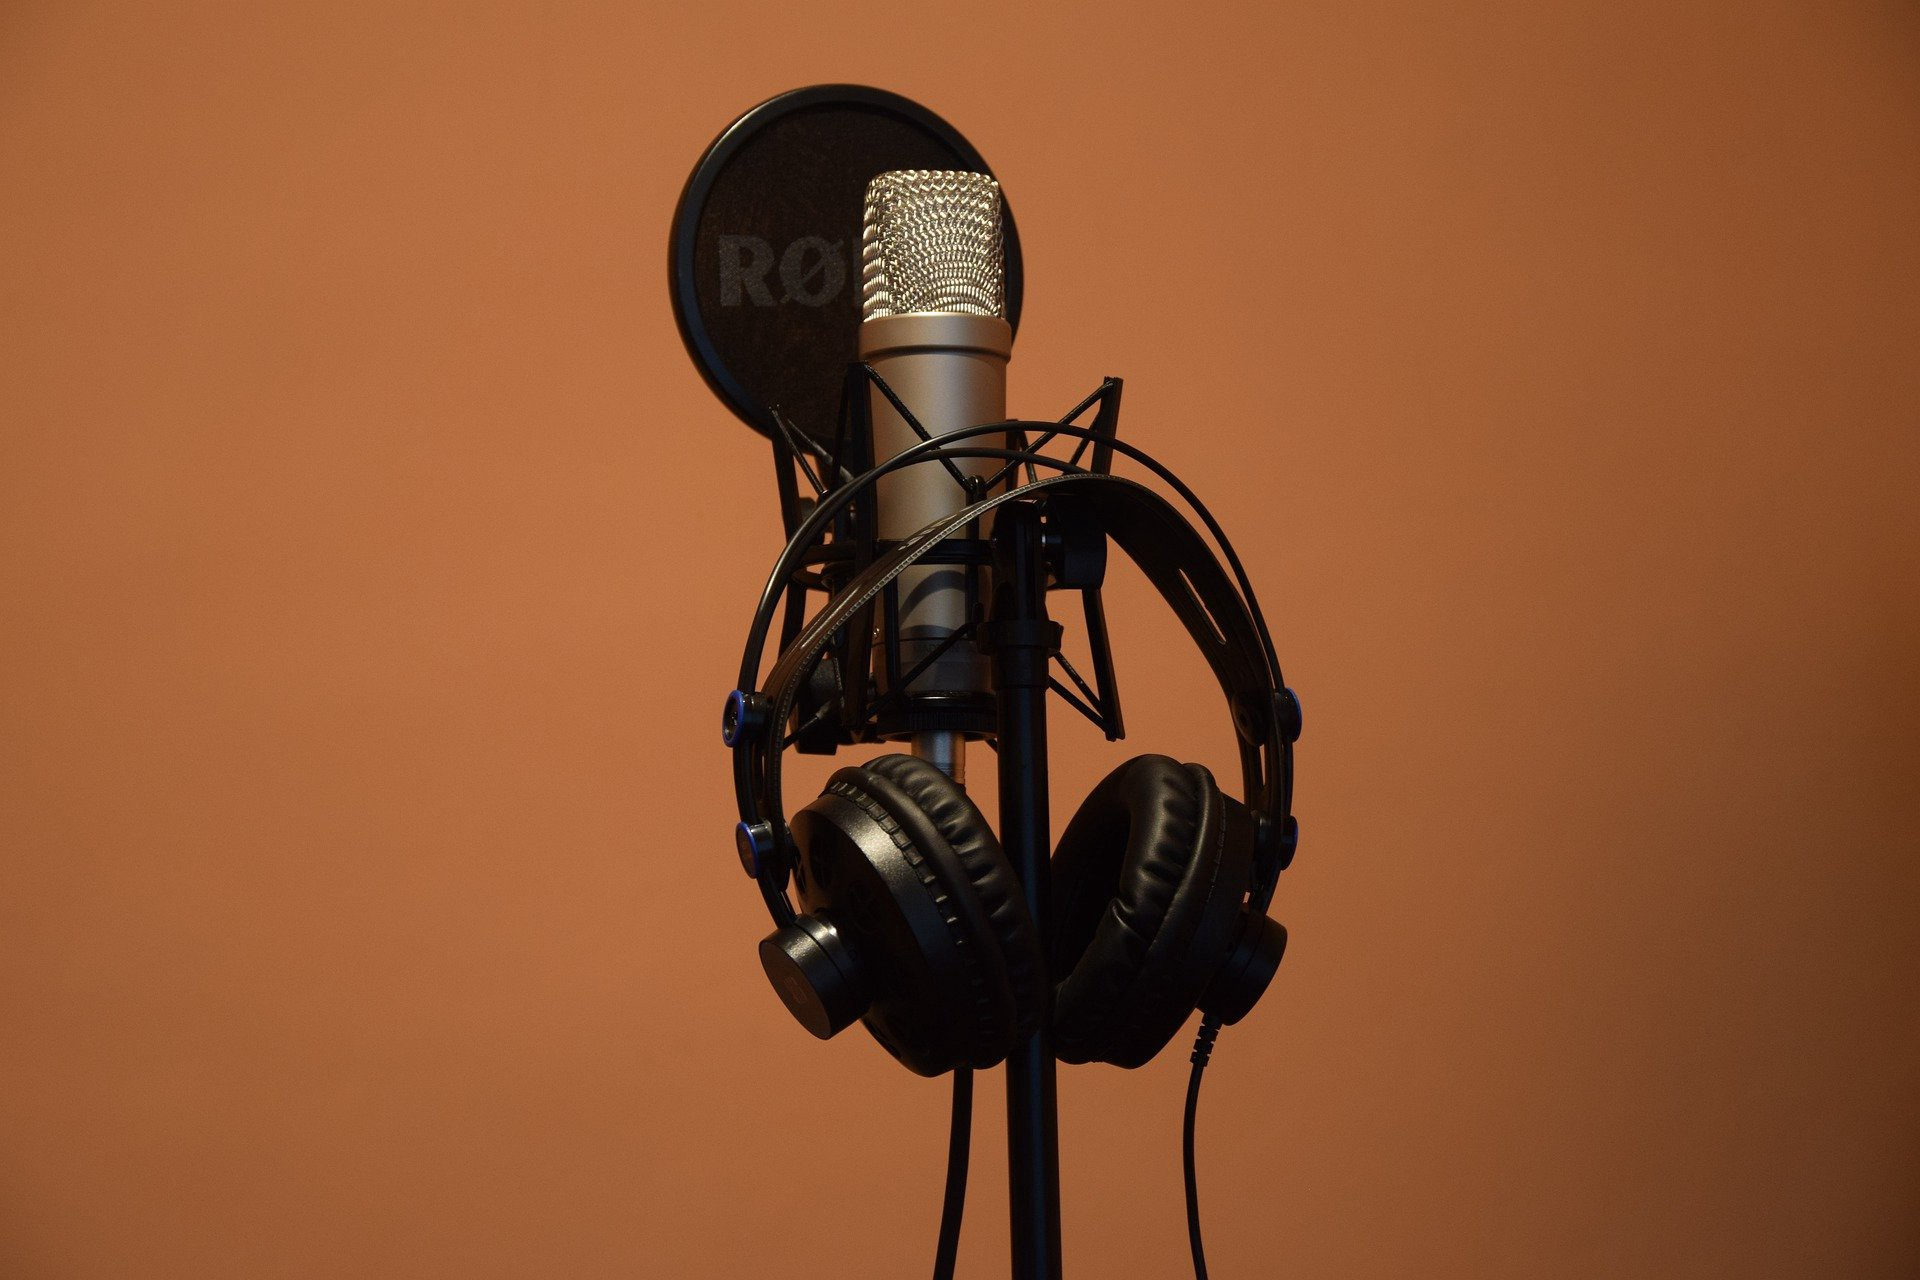 Picture of microphone and headphones